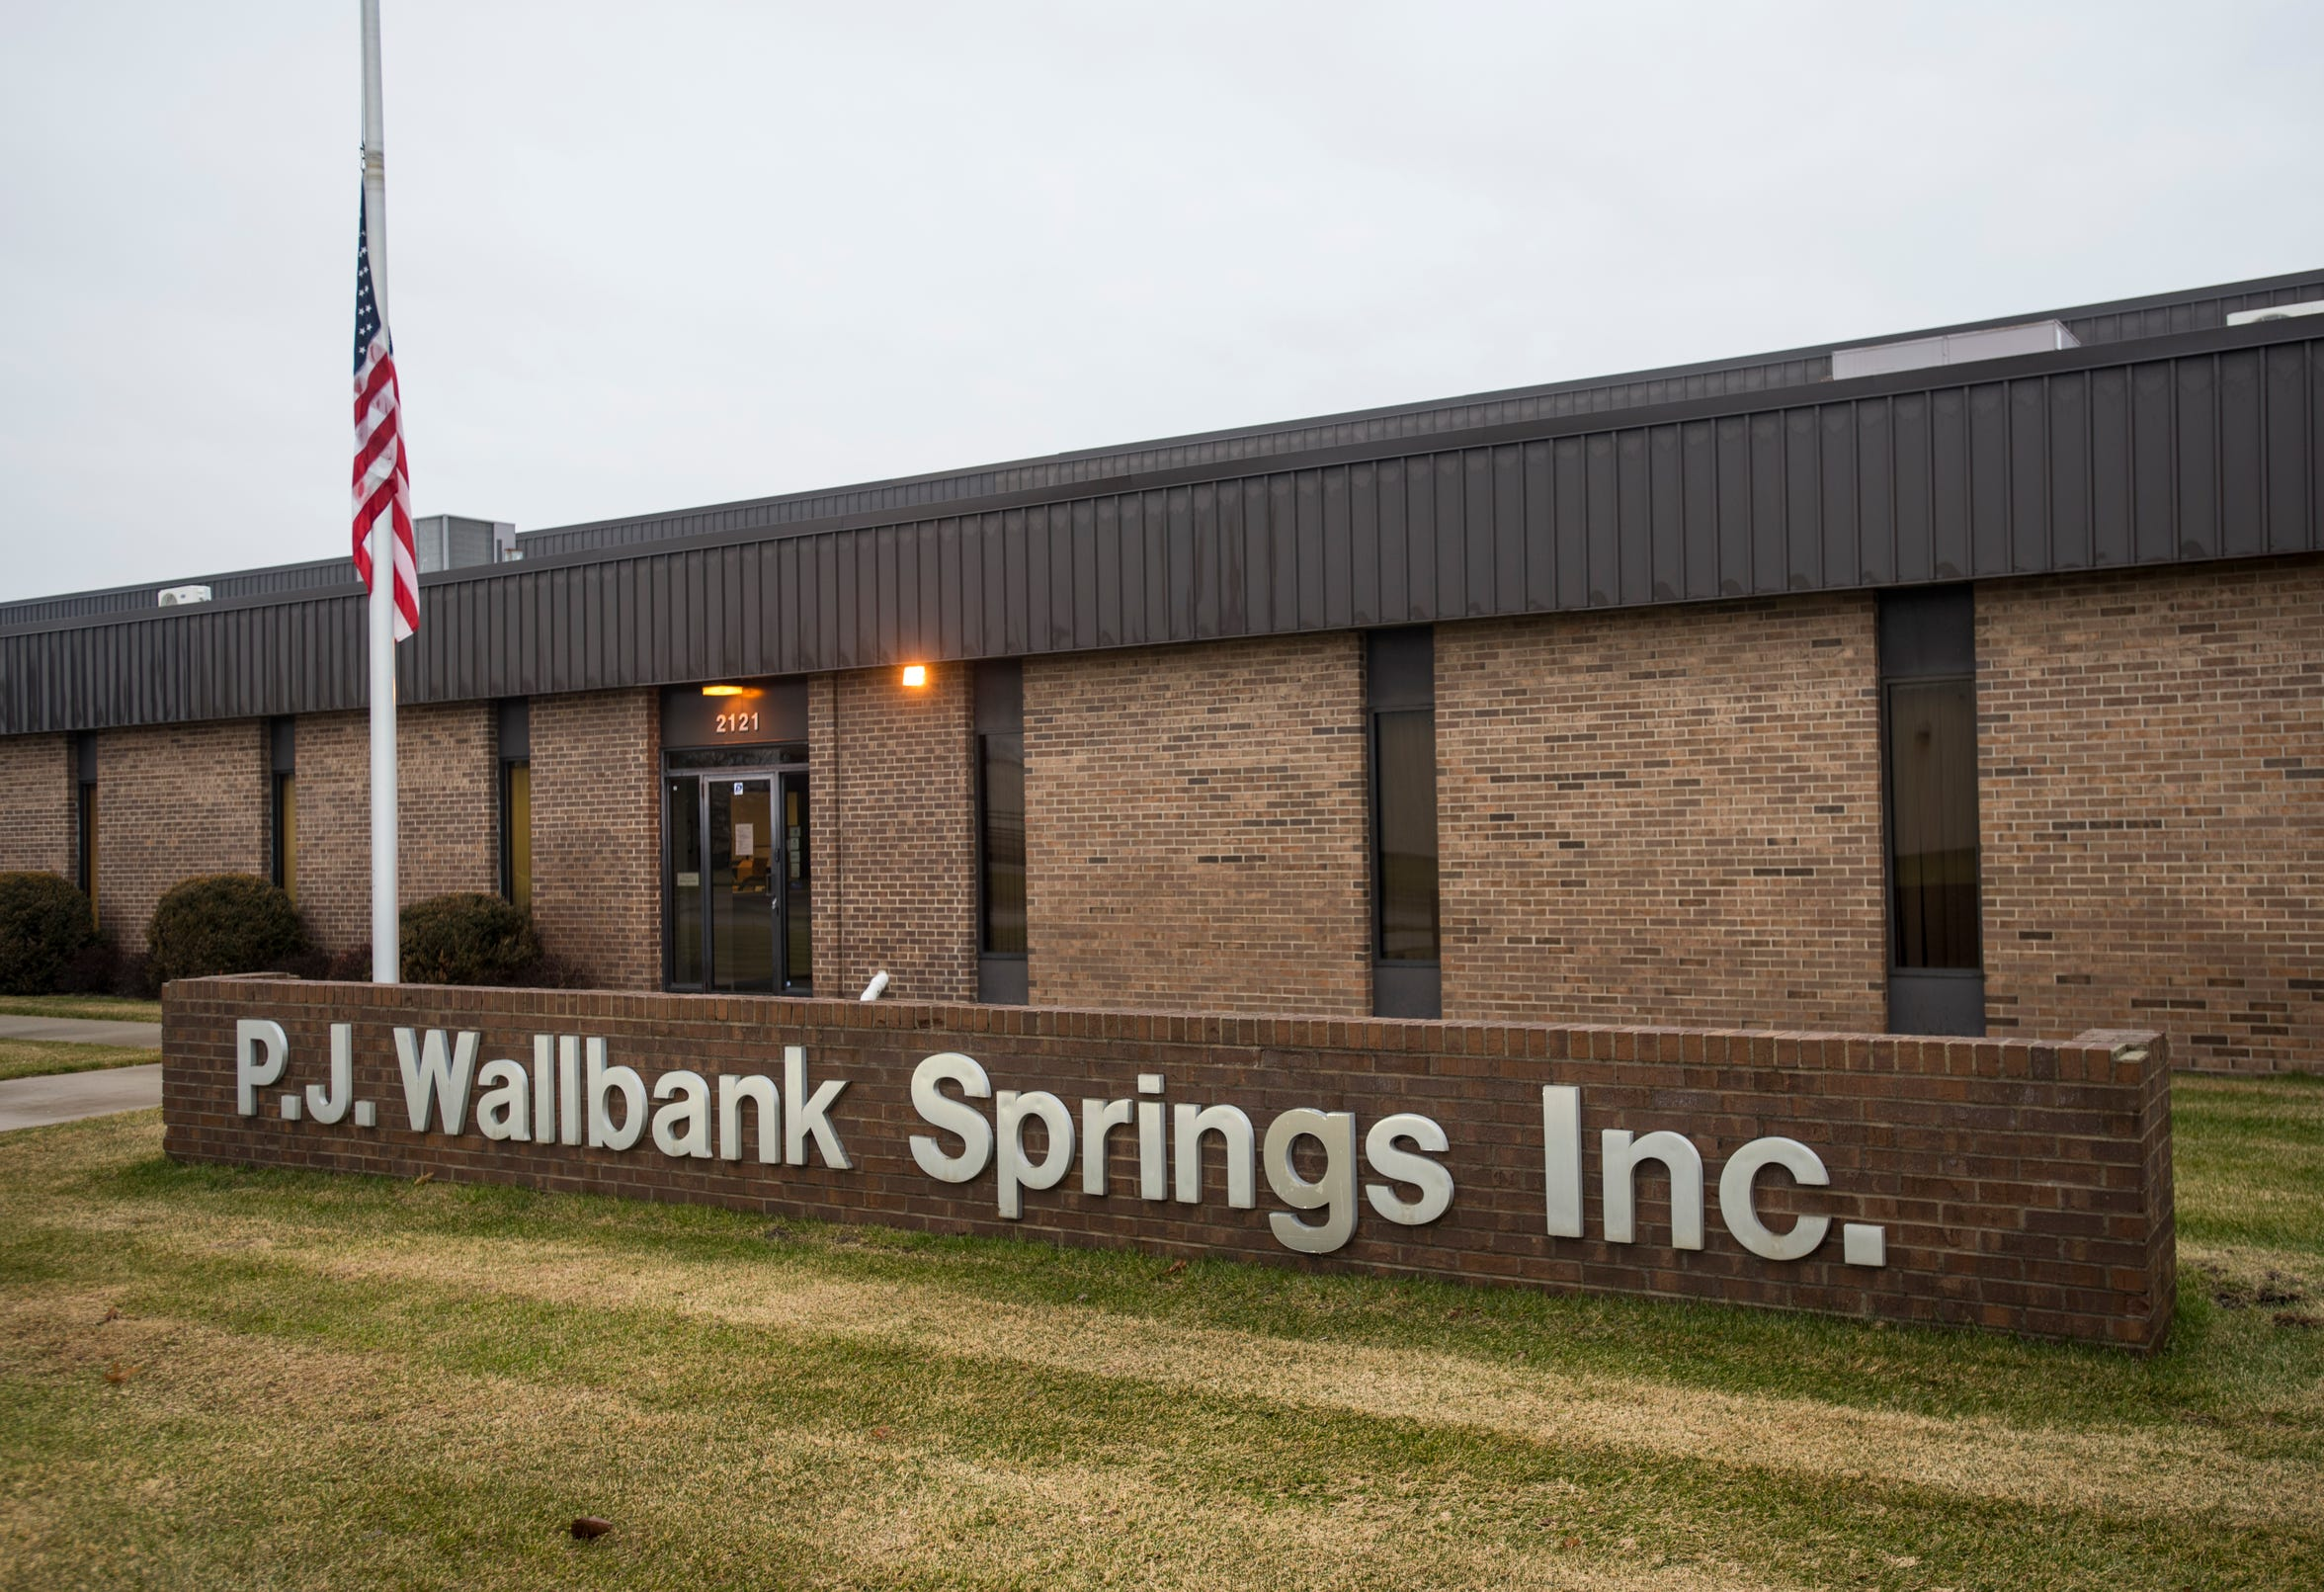 P.J. Wallbank Springs Inc.